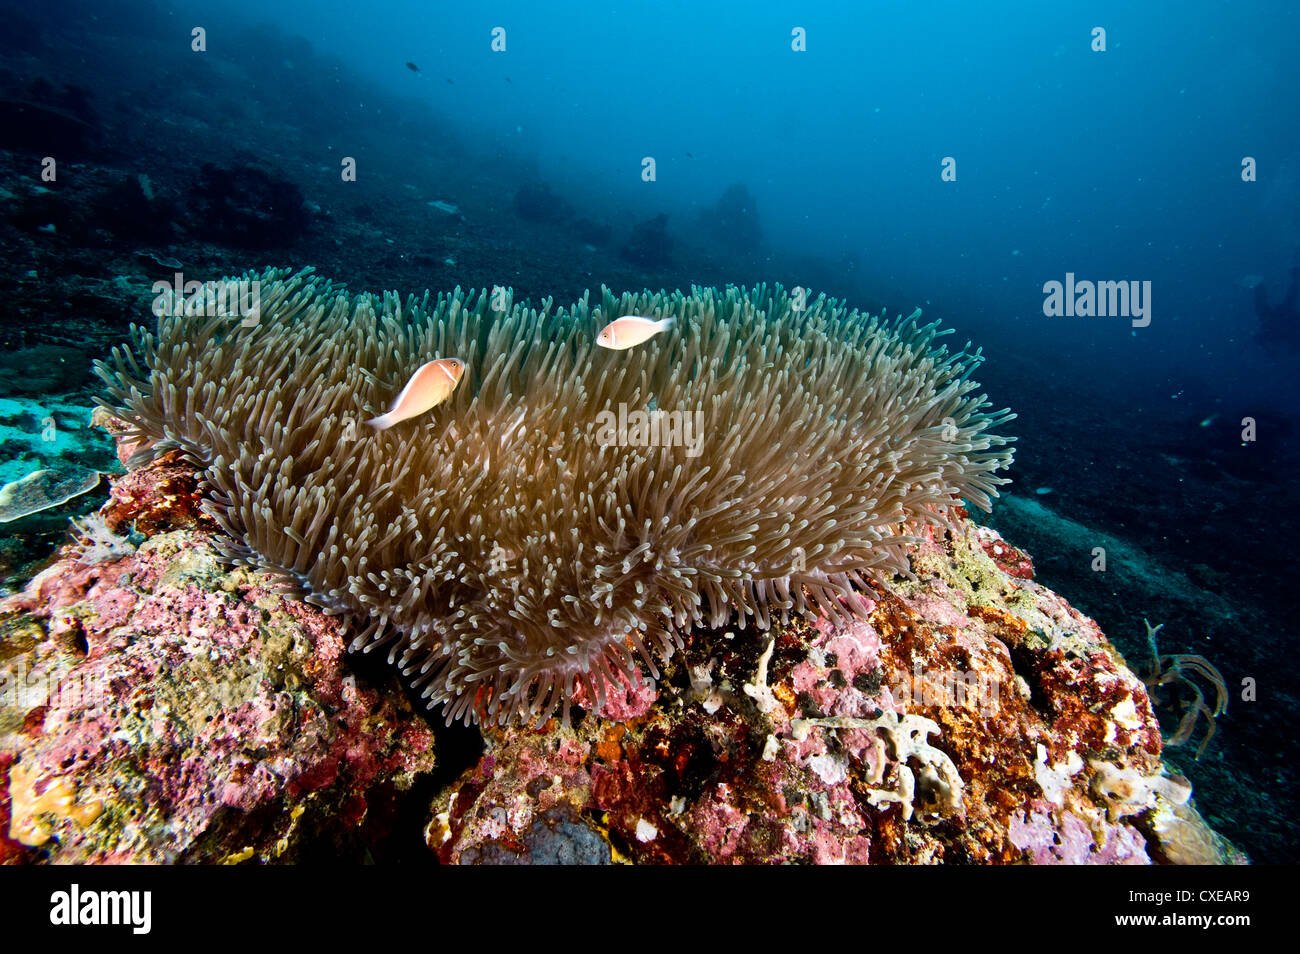 Anemone reef scene at Nalusuan Marine Sanctuary, Cebu, Philippines, Southeast Asia, Asia - Stock Image